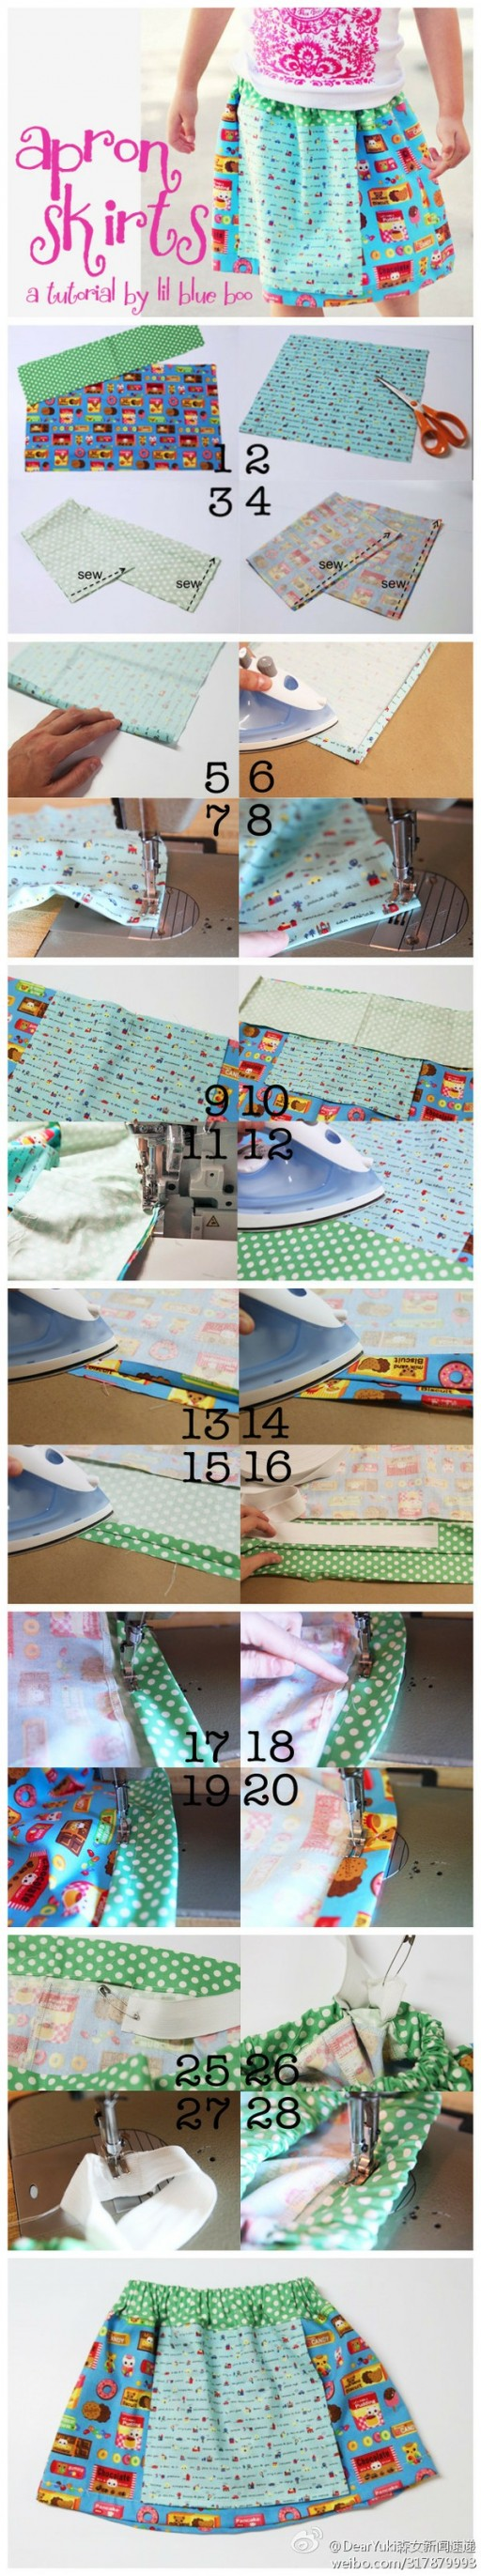 How to make cute apron skirts step by step DIY tutorial instructions with downloadable measures